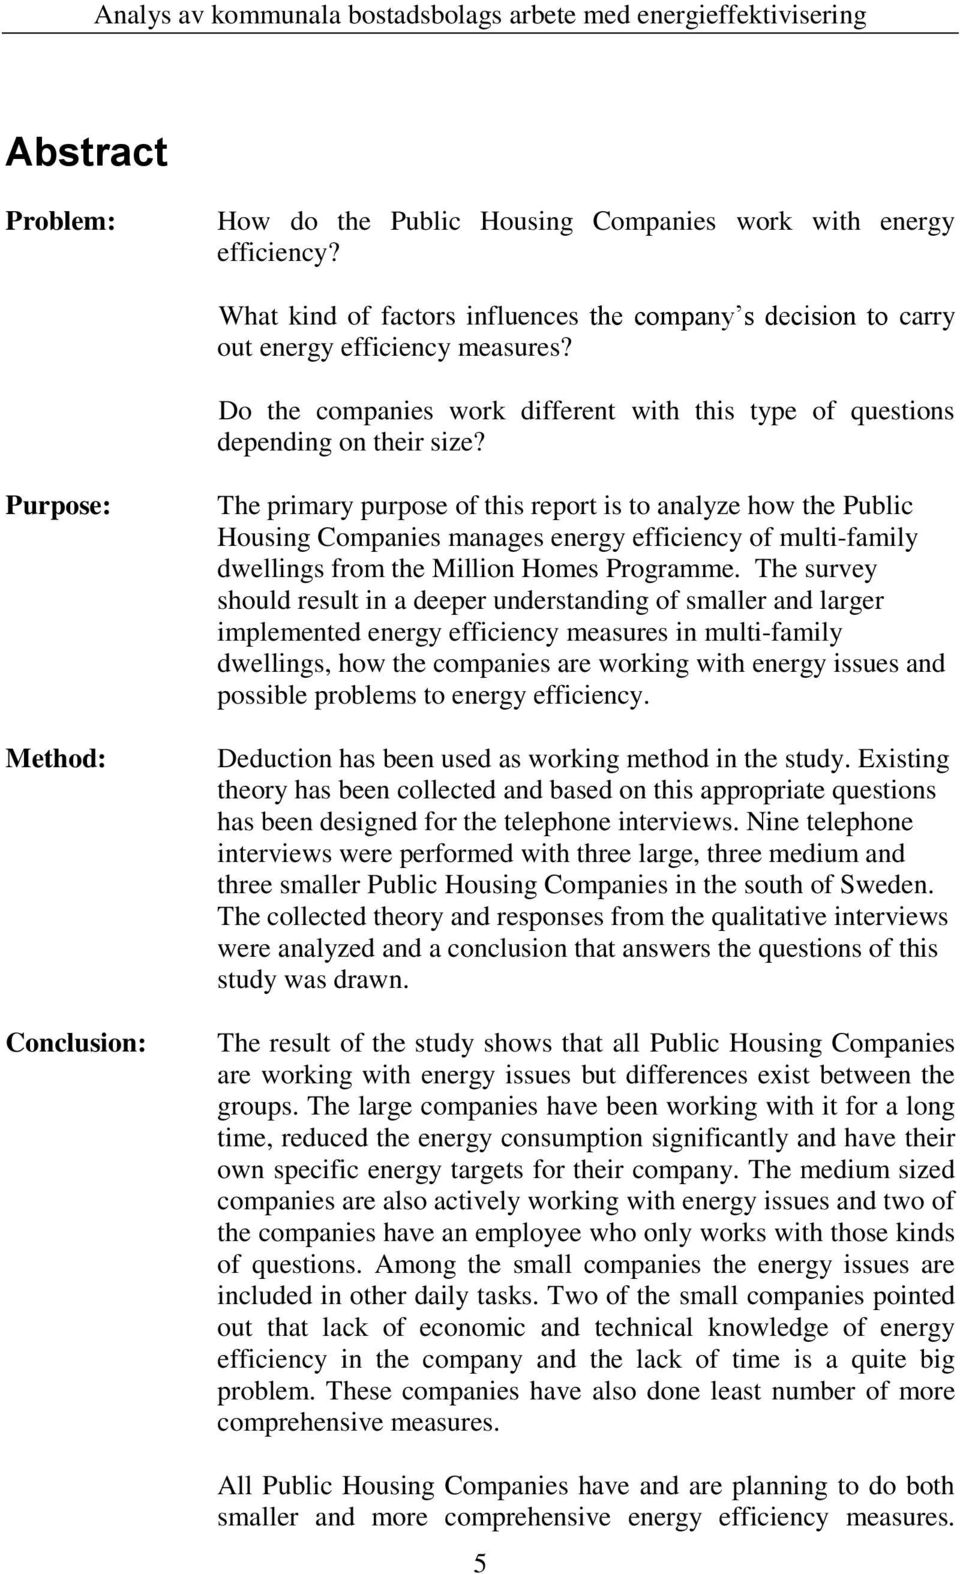 Purpose: Method: Conclusion: The primary purpose of this report is to analyze how the Public Housing Companies manages energy efficiency of multi-family dwellings from the Million Homes Programme.